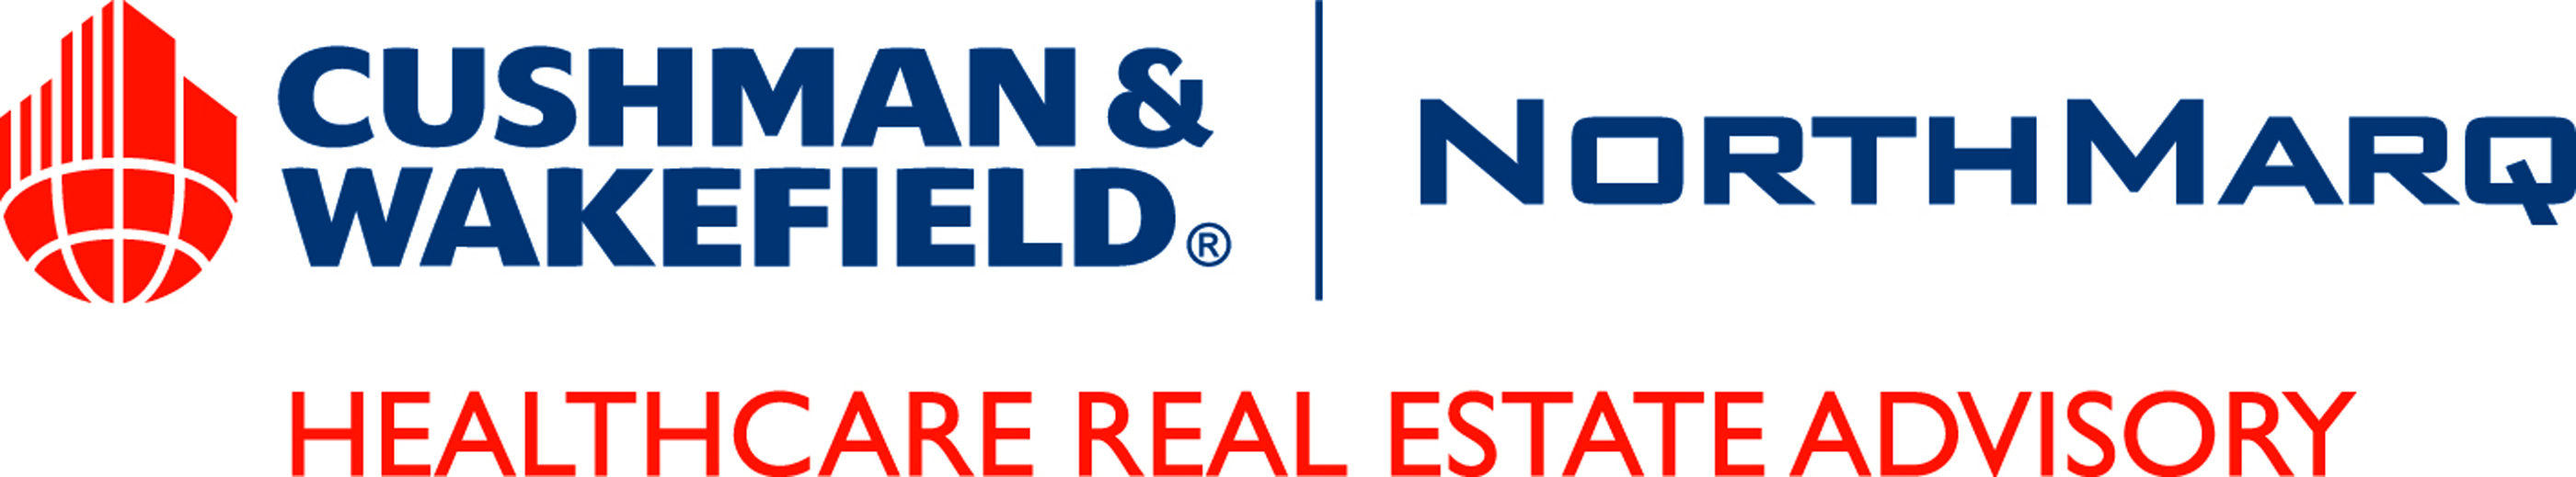 Cushman & Wakefield/NorthMarq Real Estate Services Healthcare Advisory Group